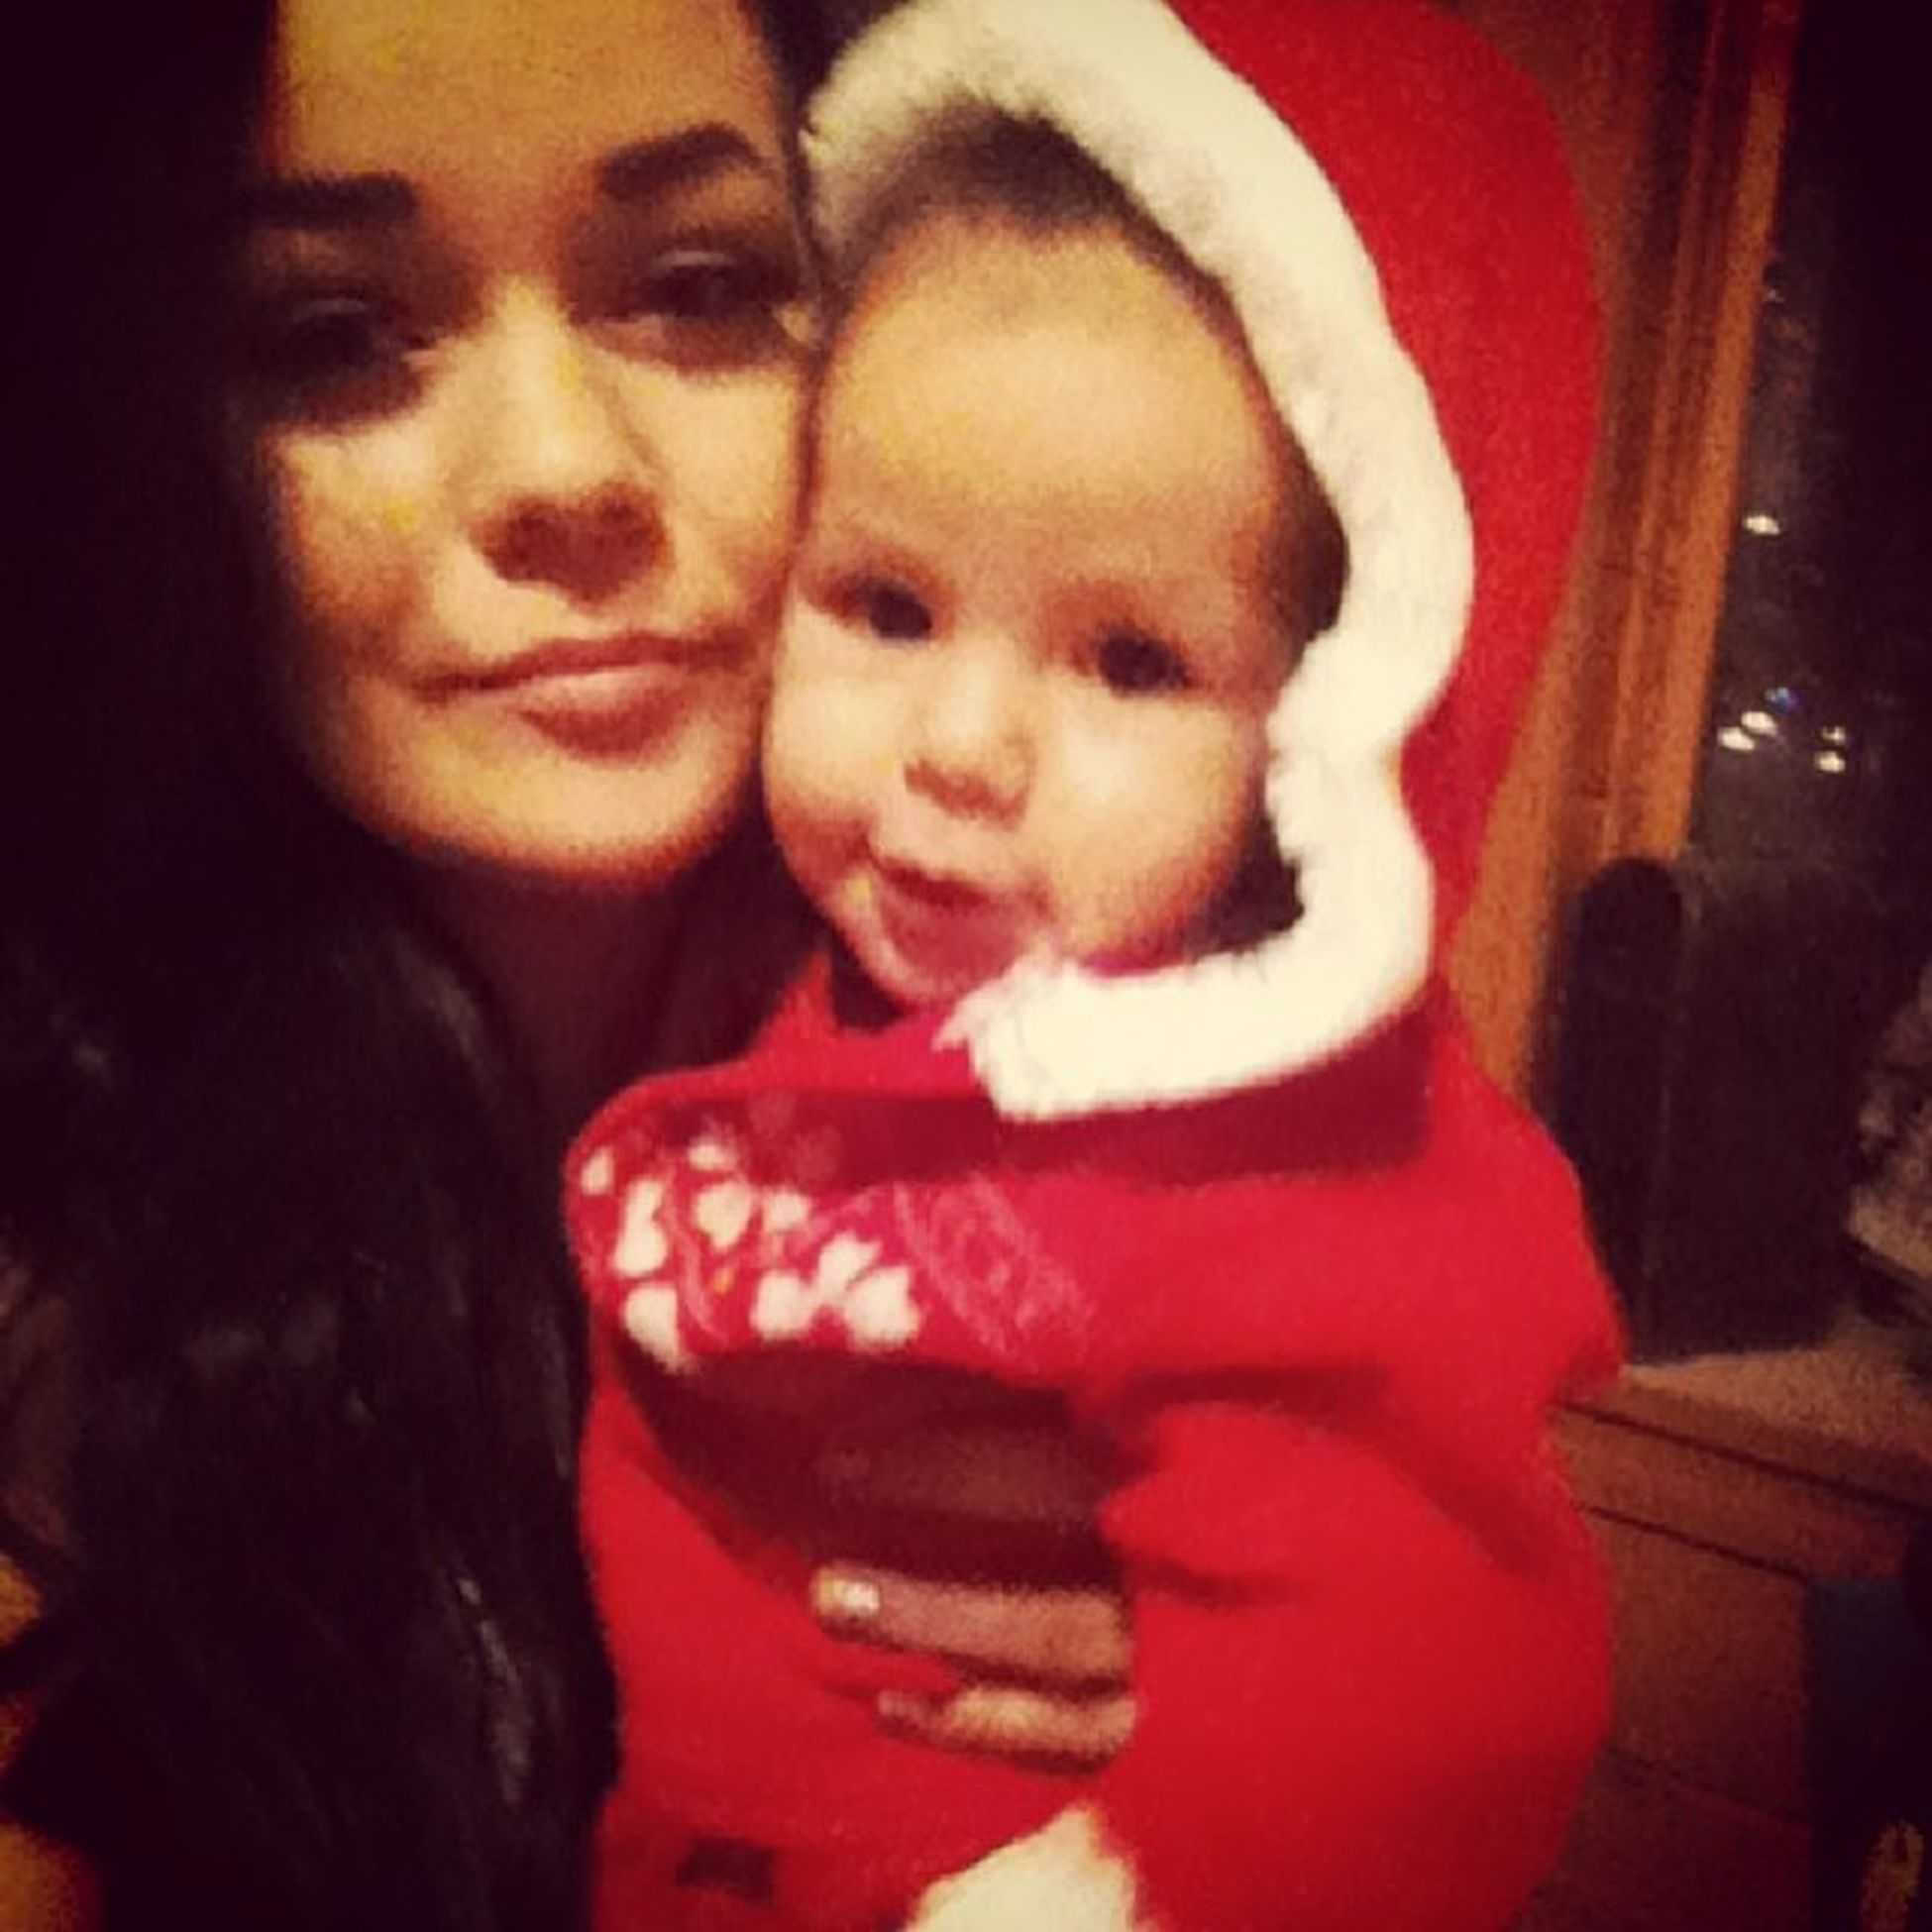 Baby it's cold outside.. ❄ Firstchristmas Soinlove Santasuit Mygorgeous sohappymyworldbestbabyeversomuchloveforeverMYgirl